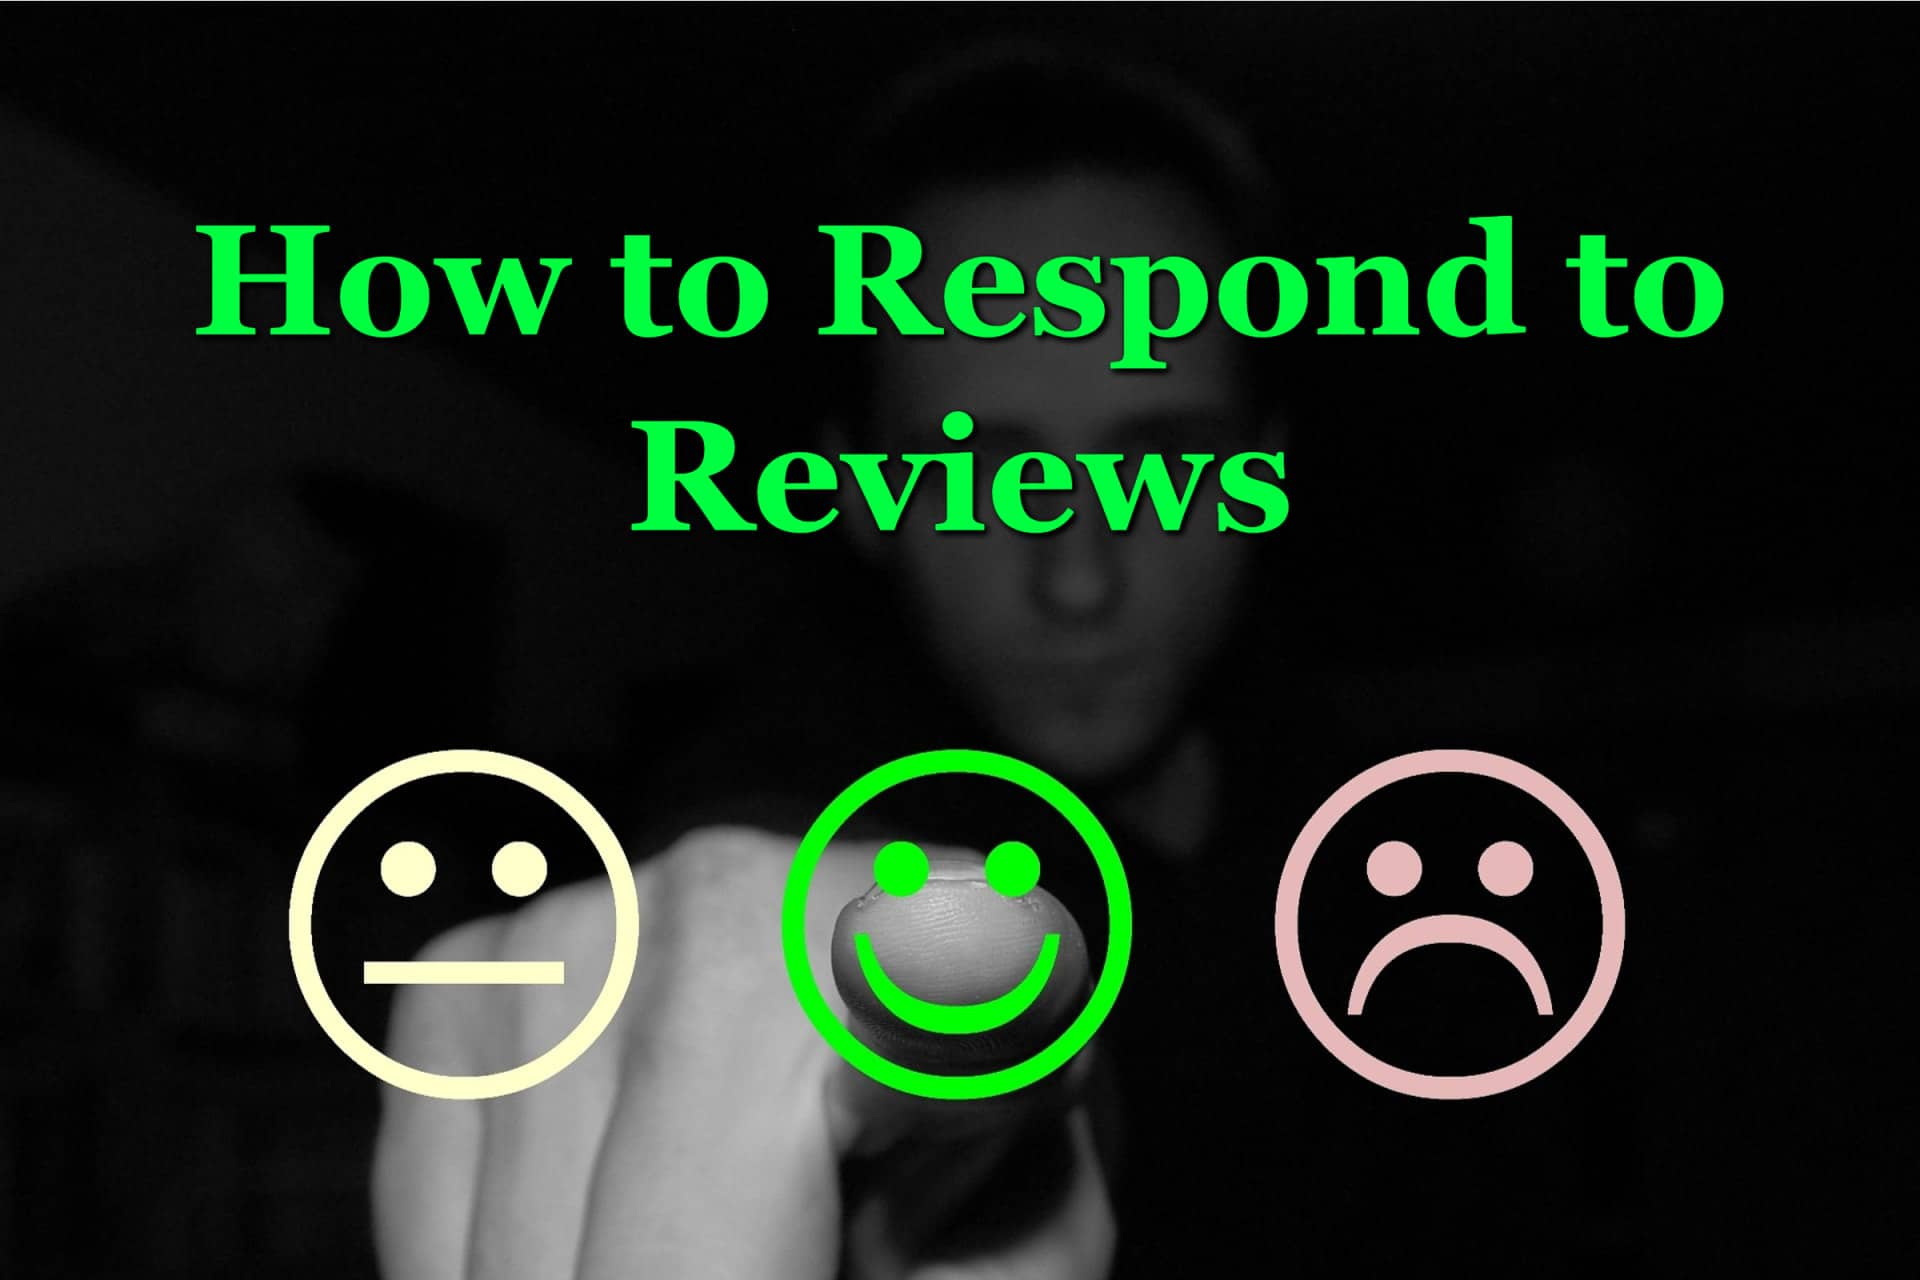 A man who understands how to respond to reviews who is pointing at a smiley face.